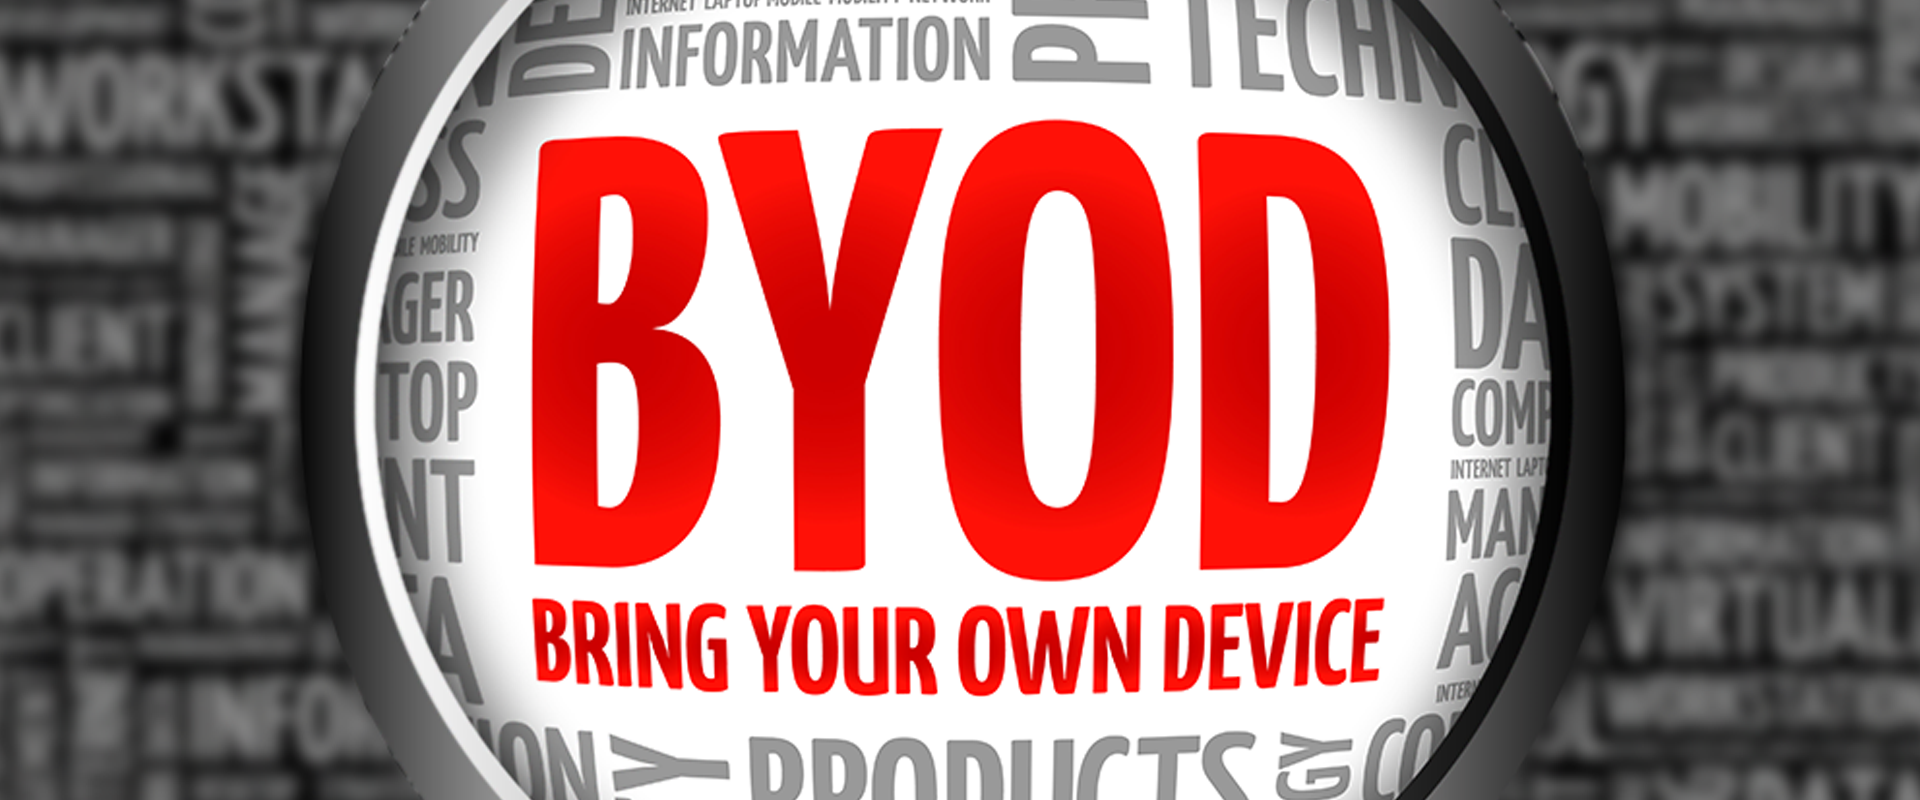 bring-your-own-device-policies